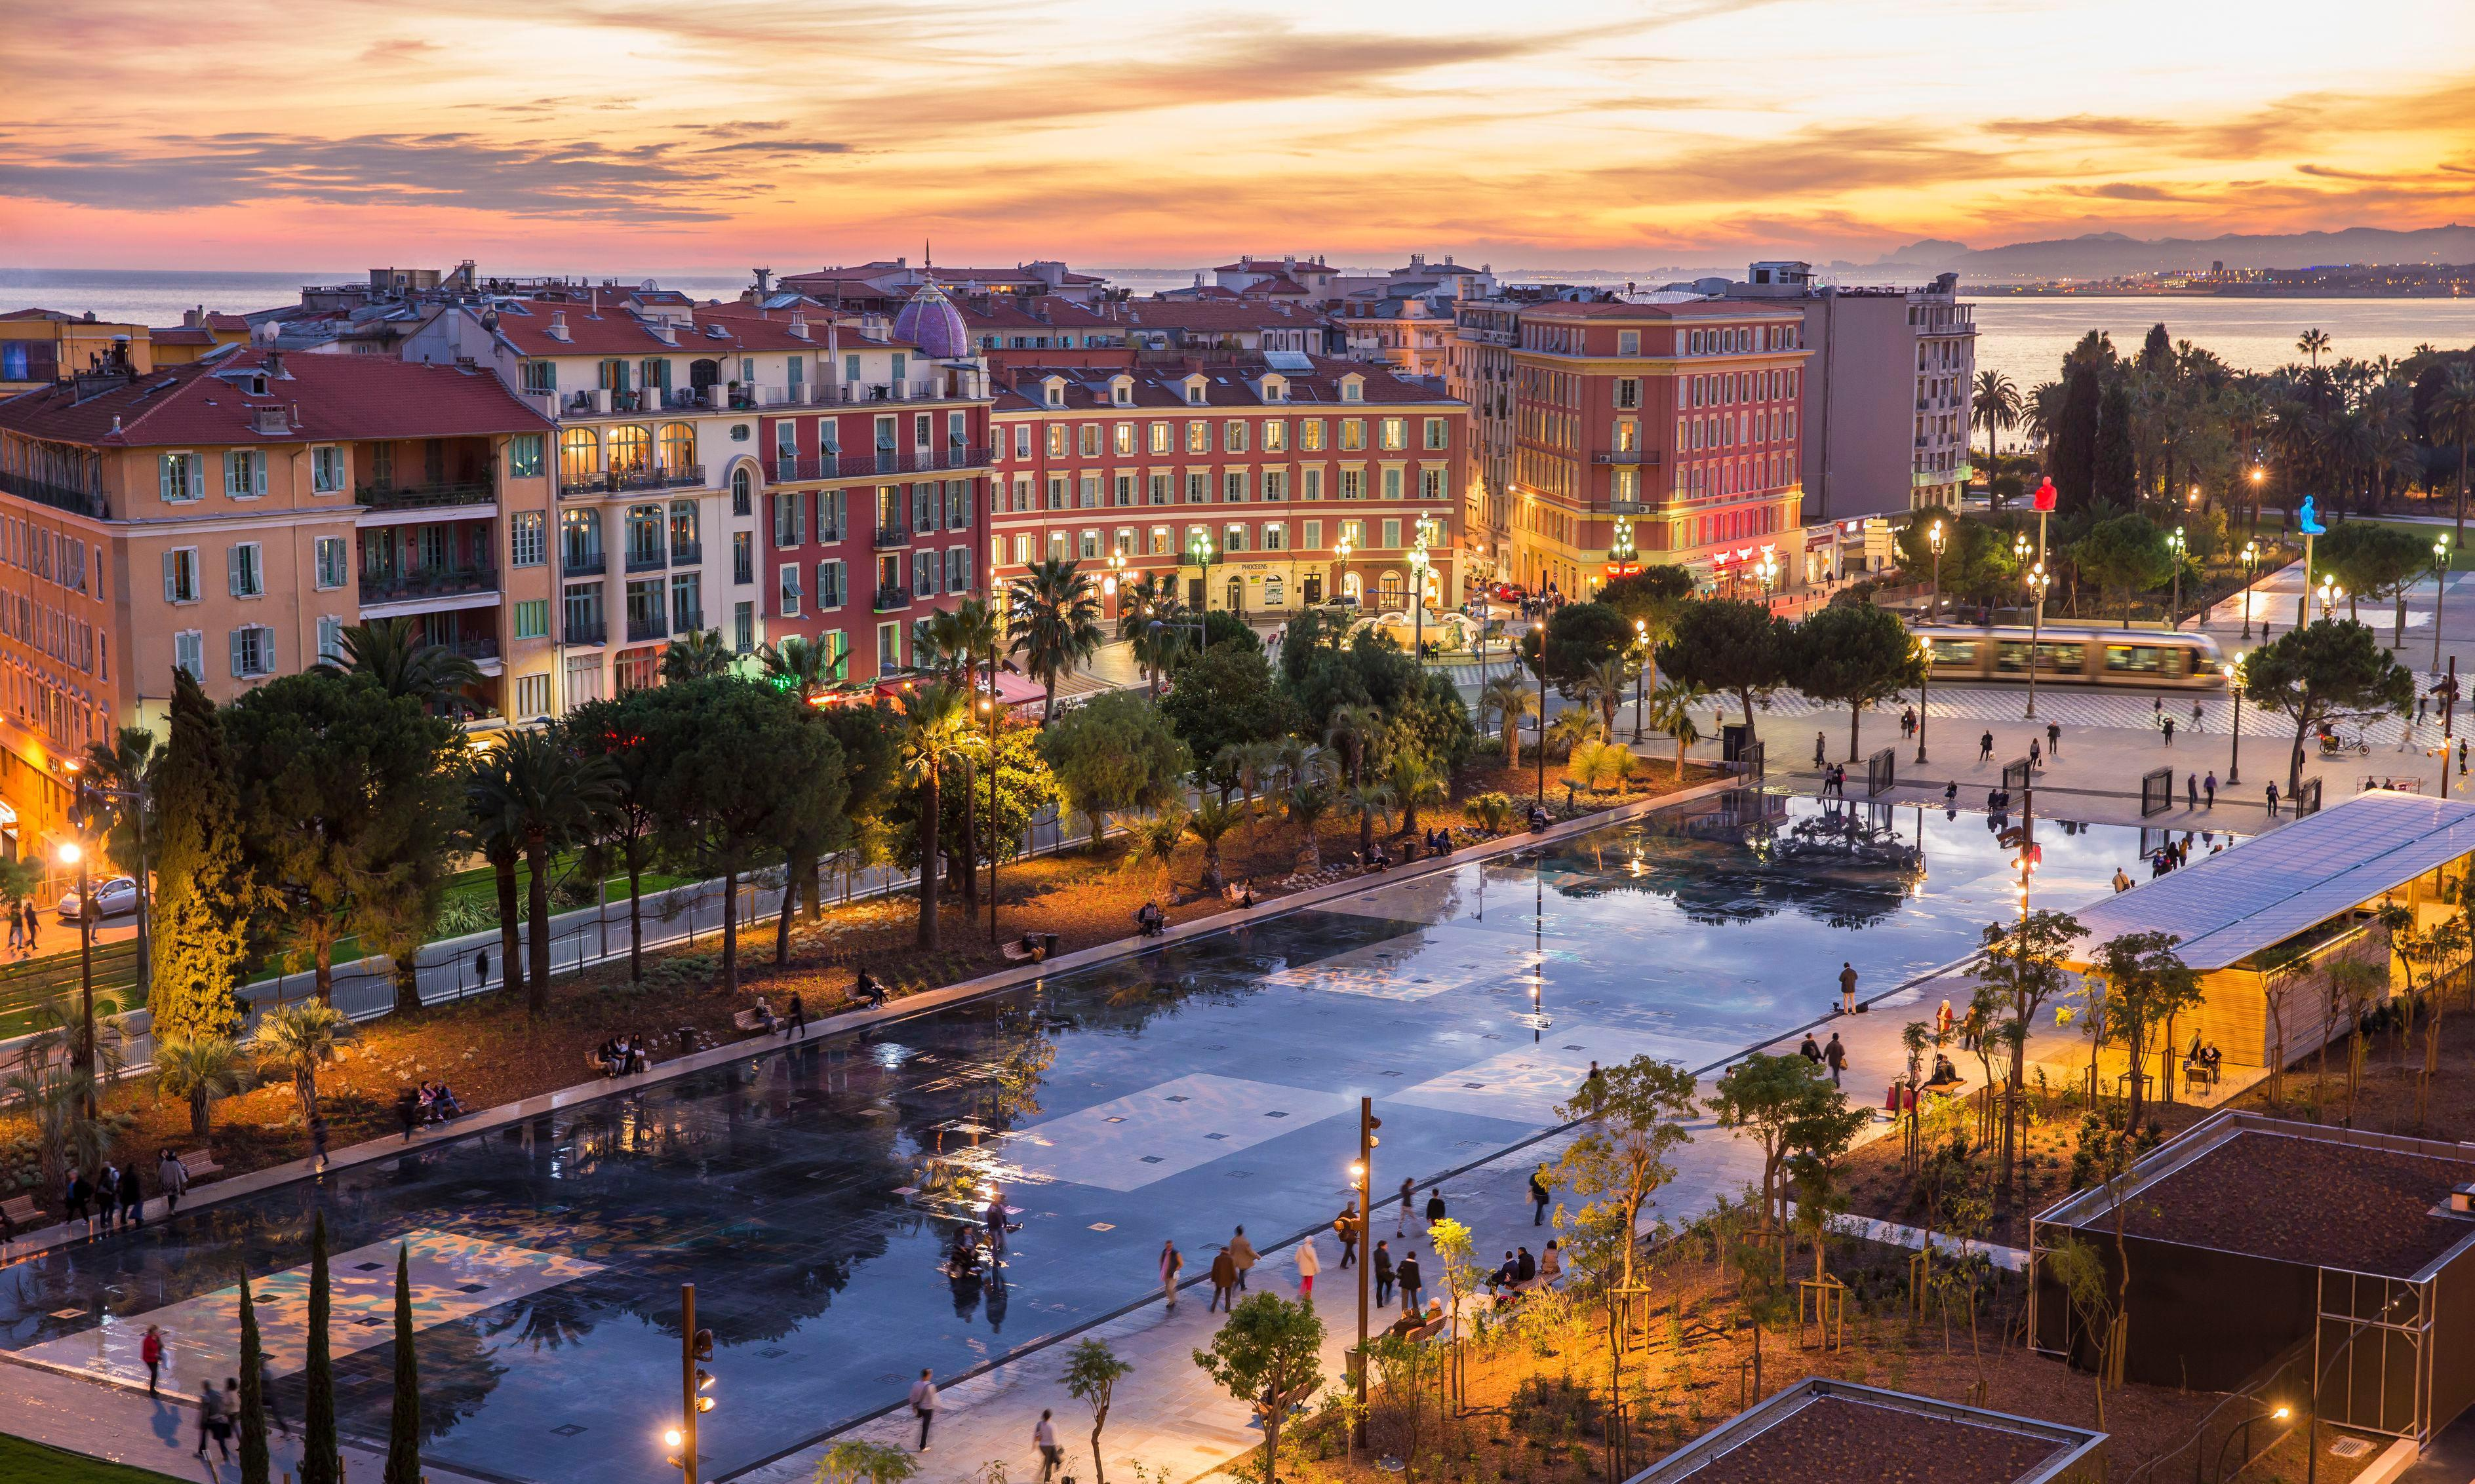 A local's guide to Nice, France: 10 top tips